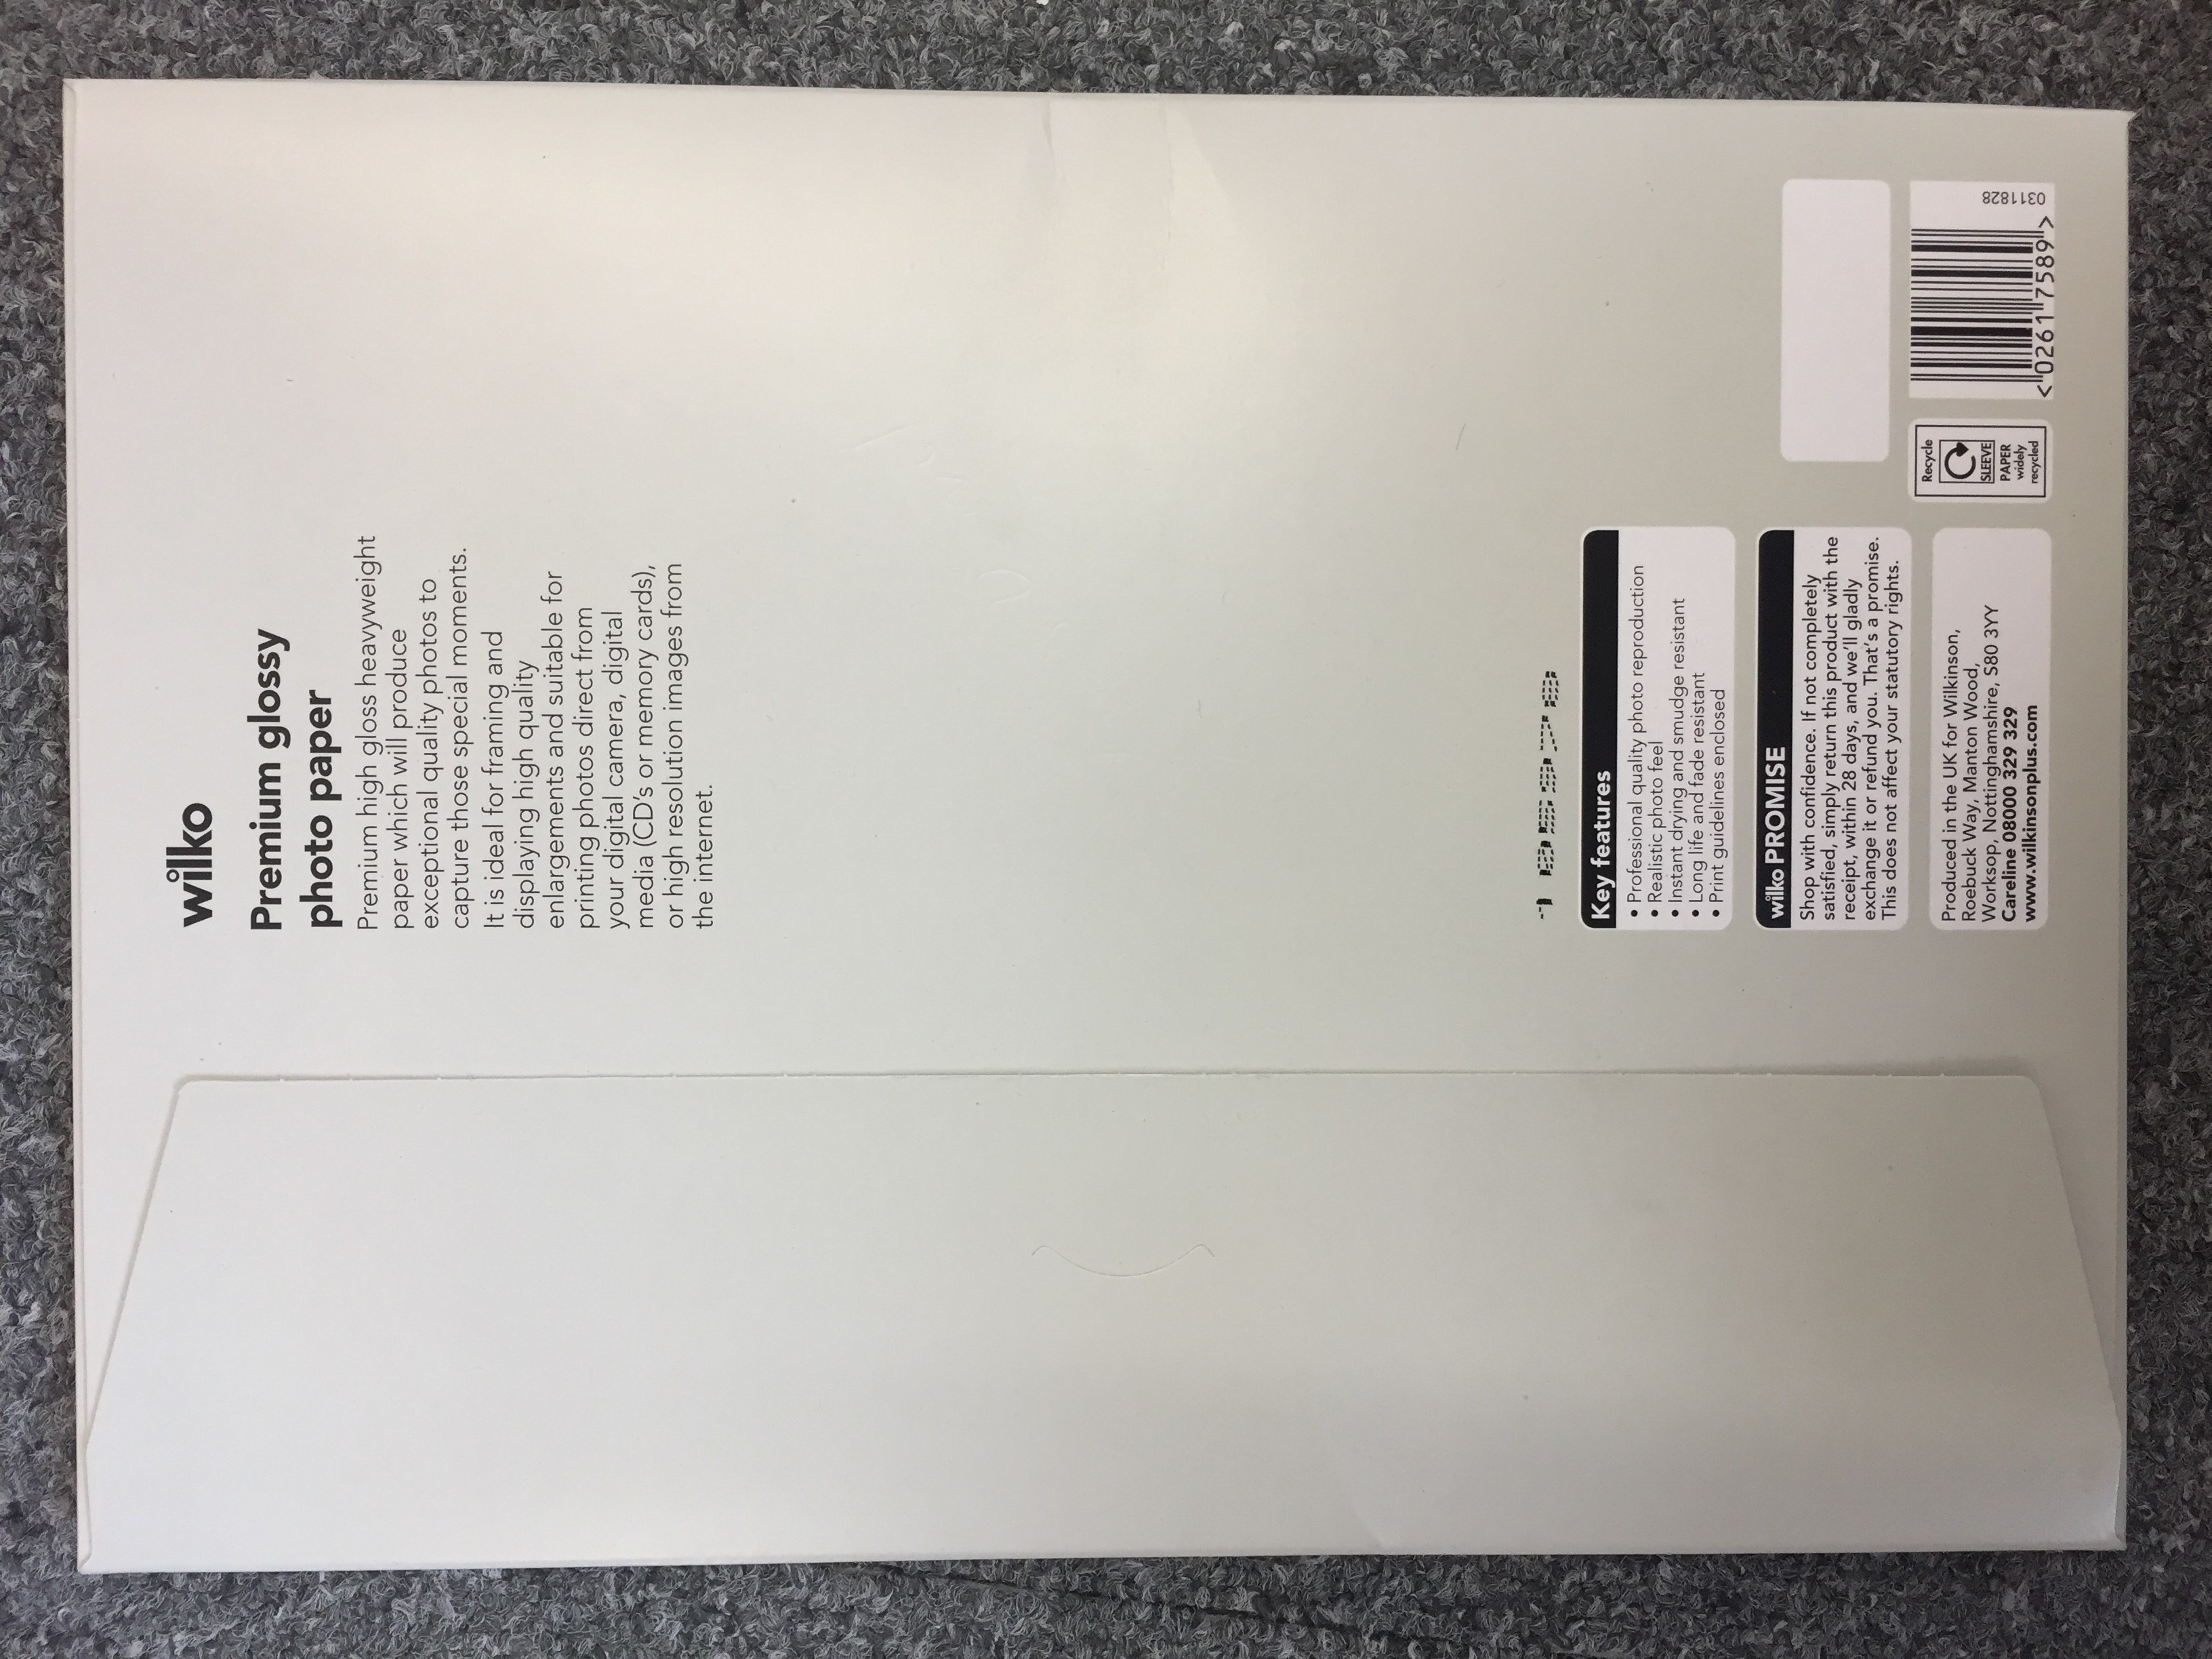 Premium Glossy Heavyweight Photo Paper now on BBX - 17 Boxes